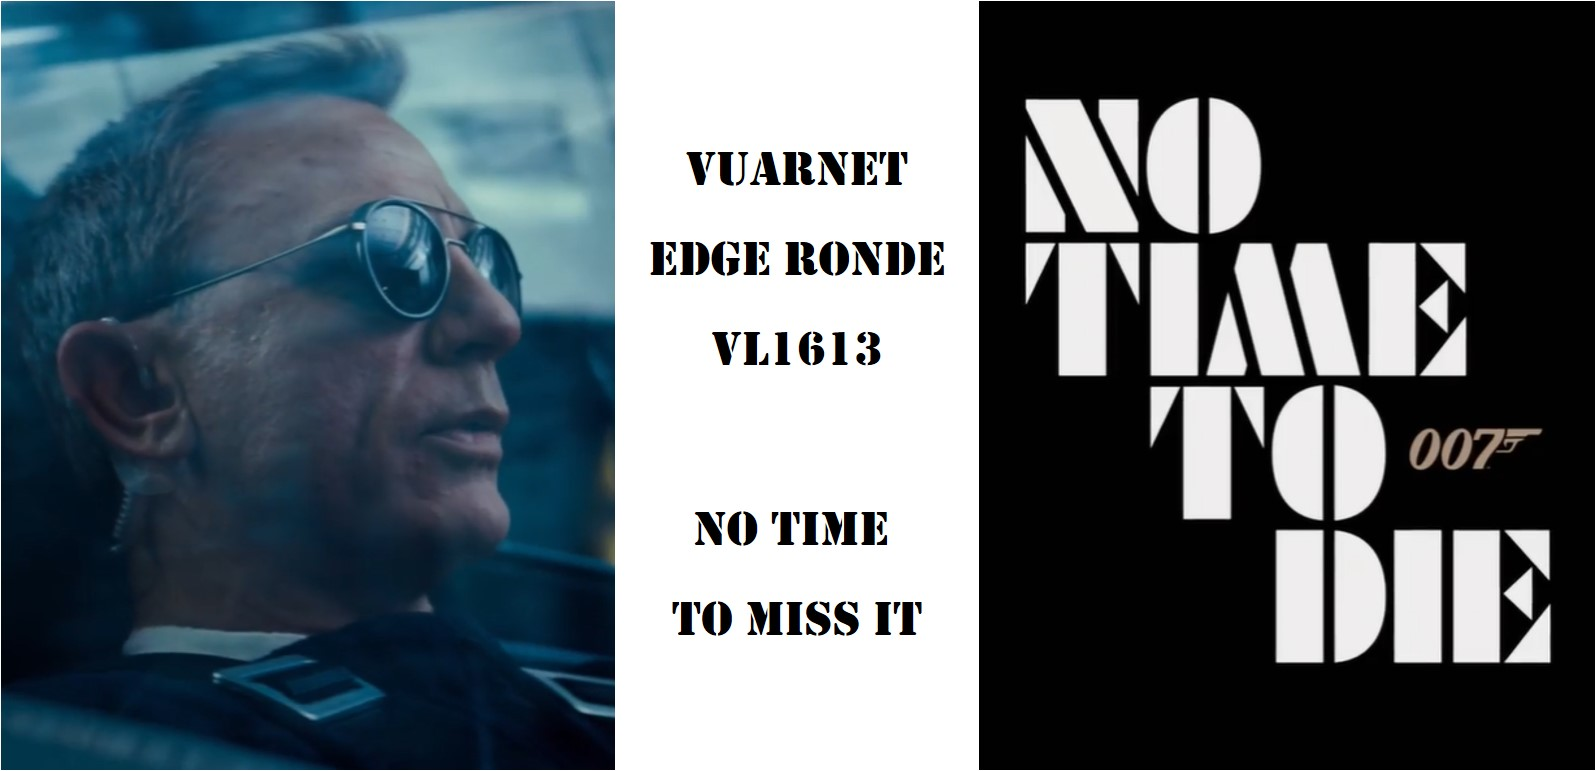 No time to die vuarnet edge 1613